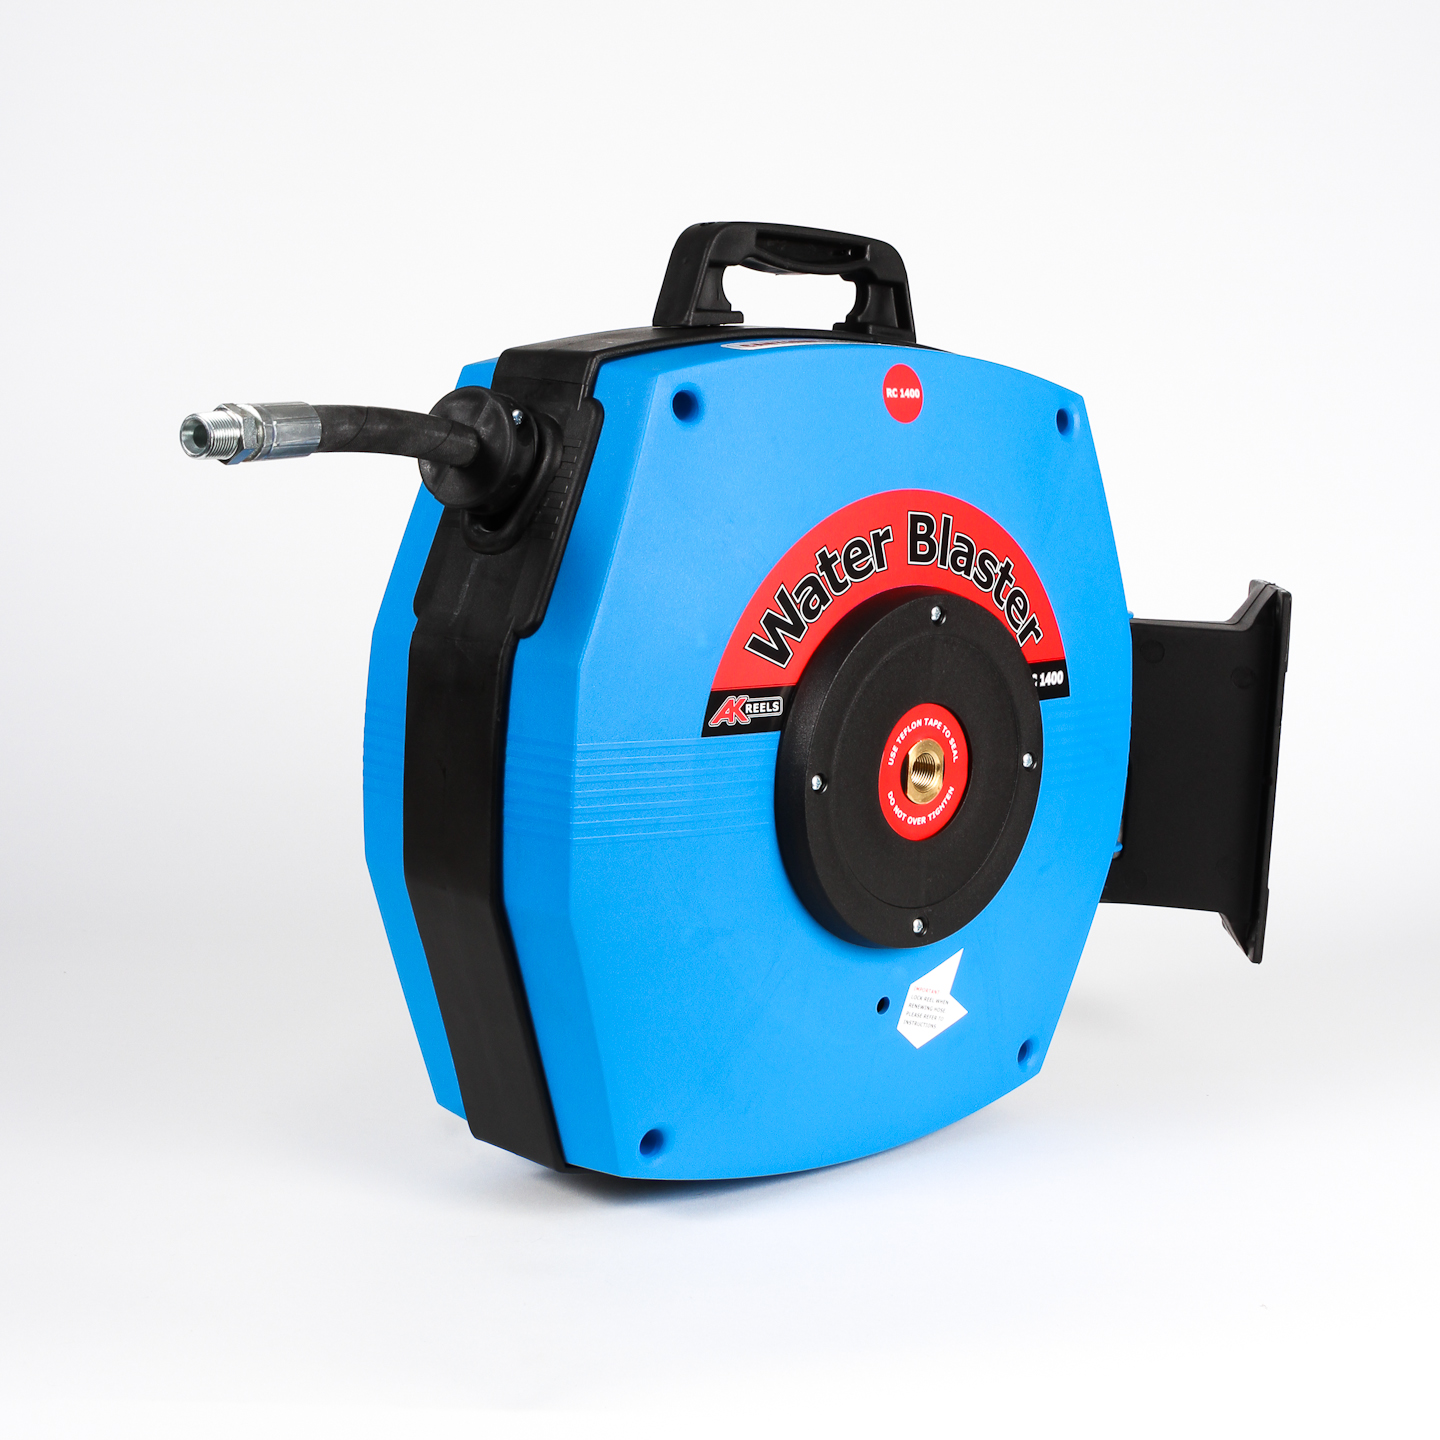 Waterblaster Hose Reel